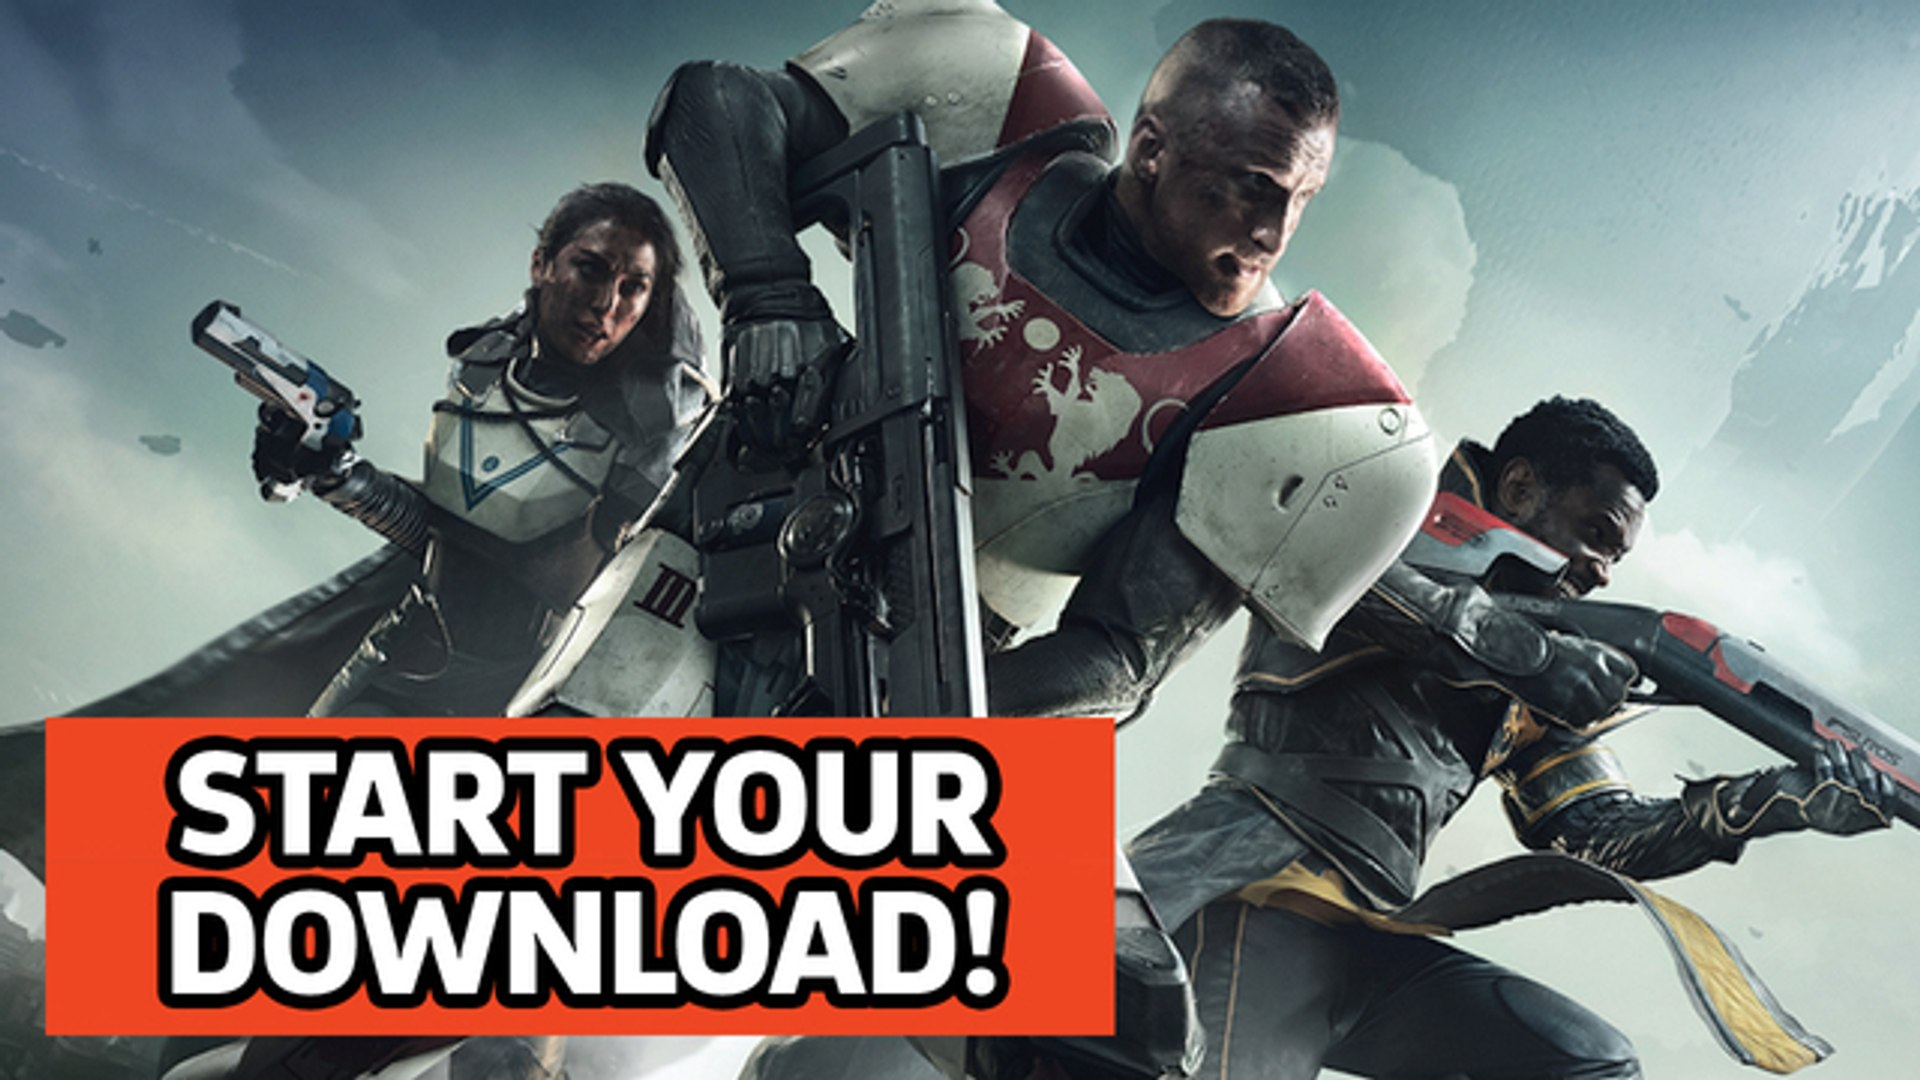 Destiny 2 Preload Info; Switch Outsells PS4 In July! - GS News Roundup